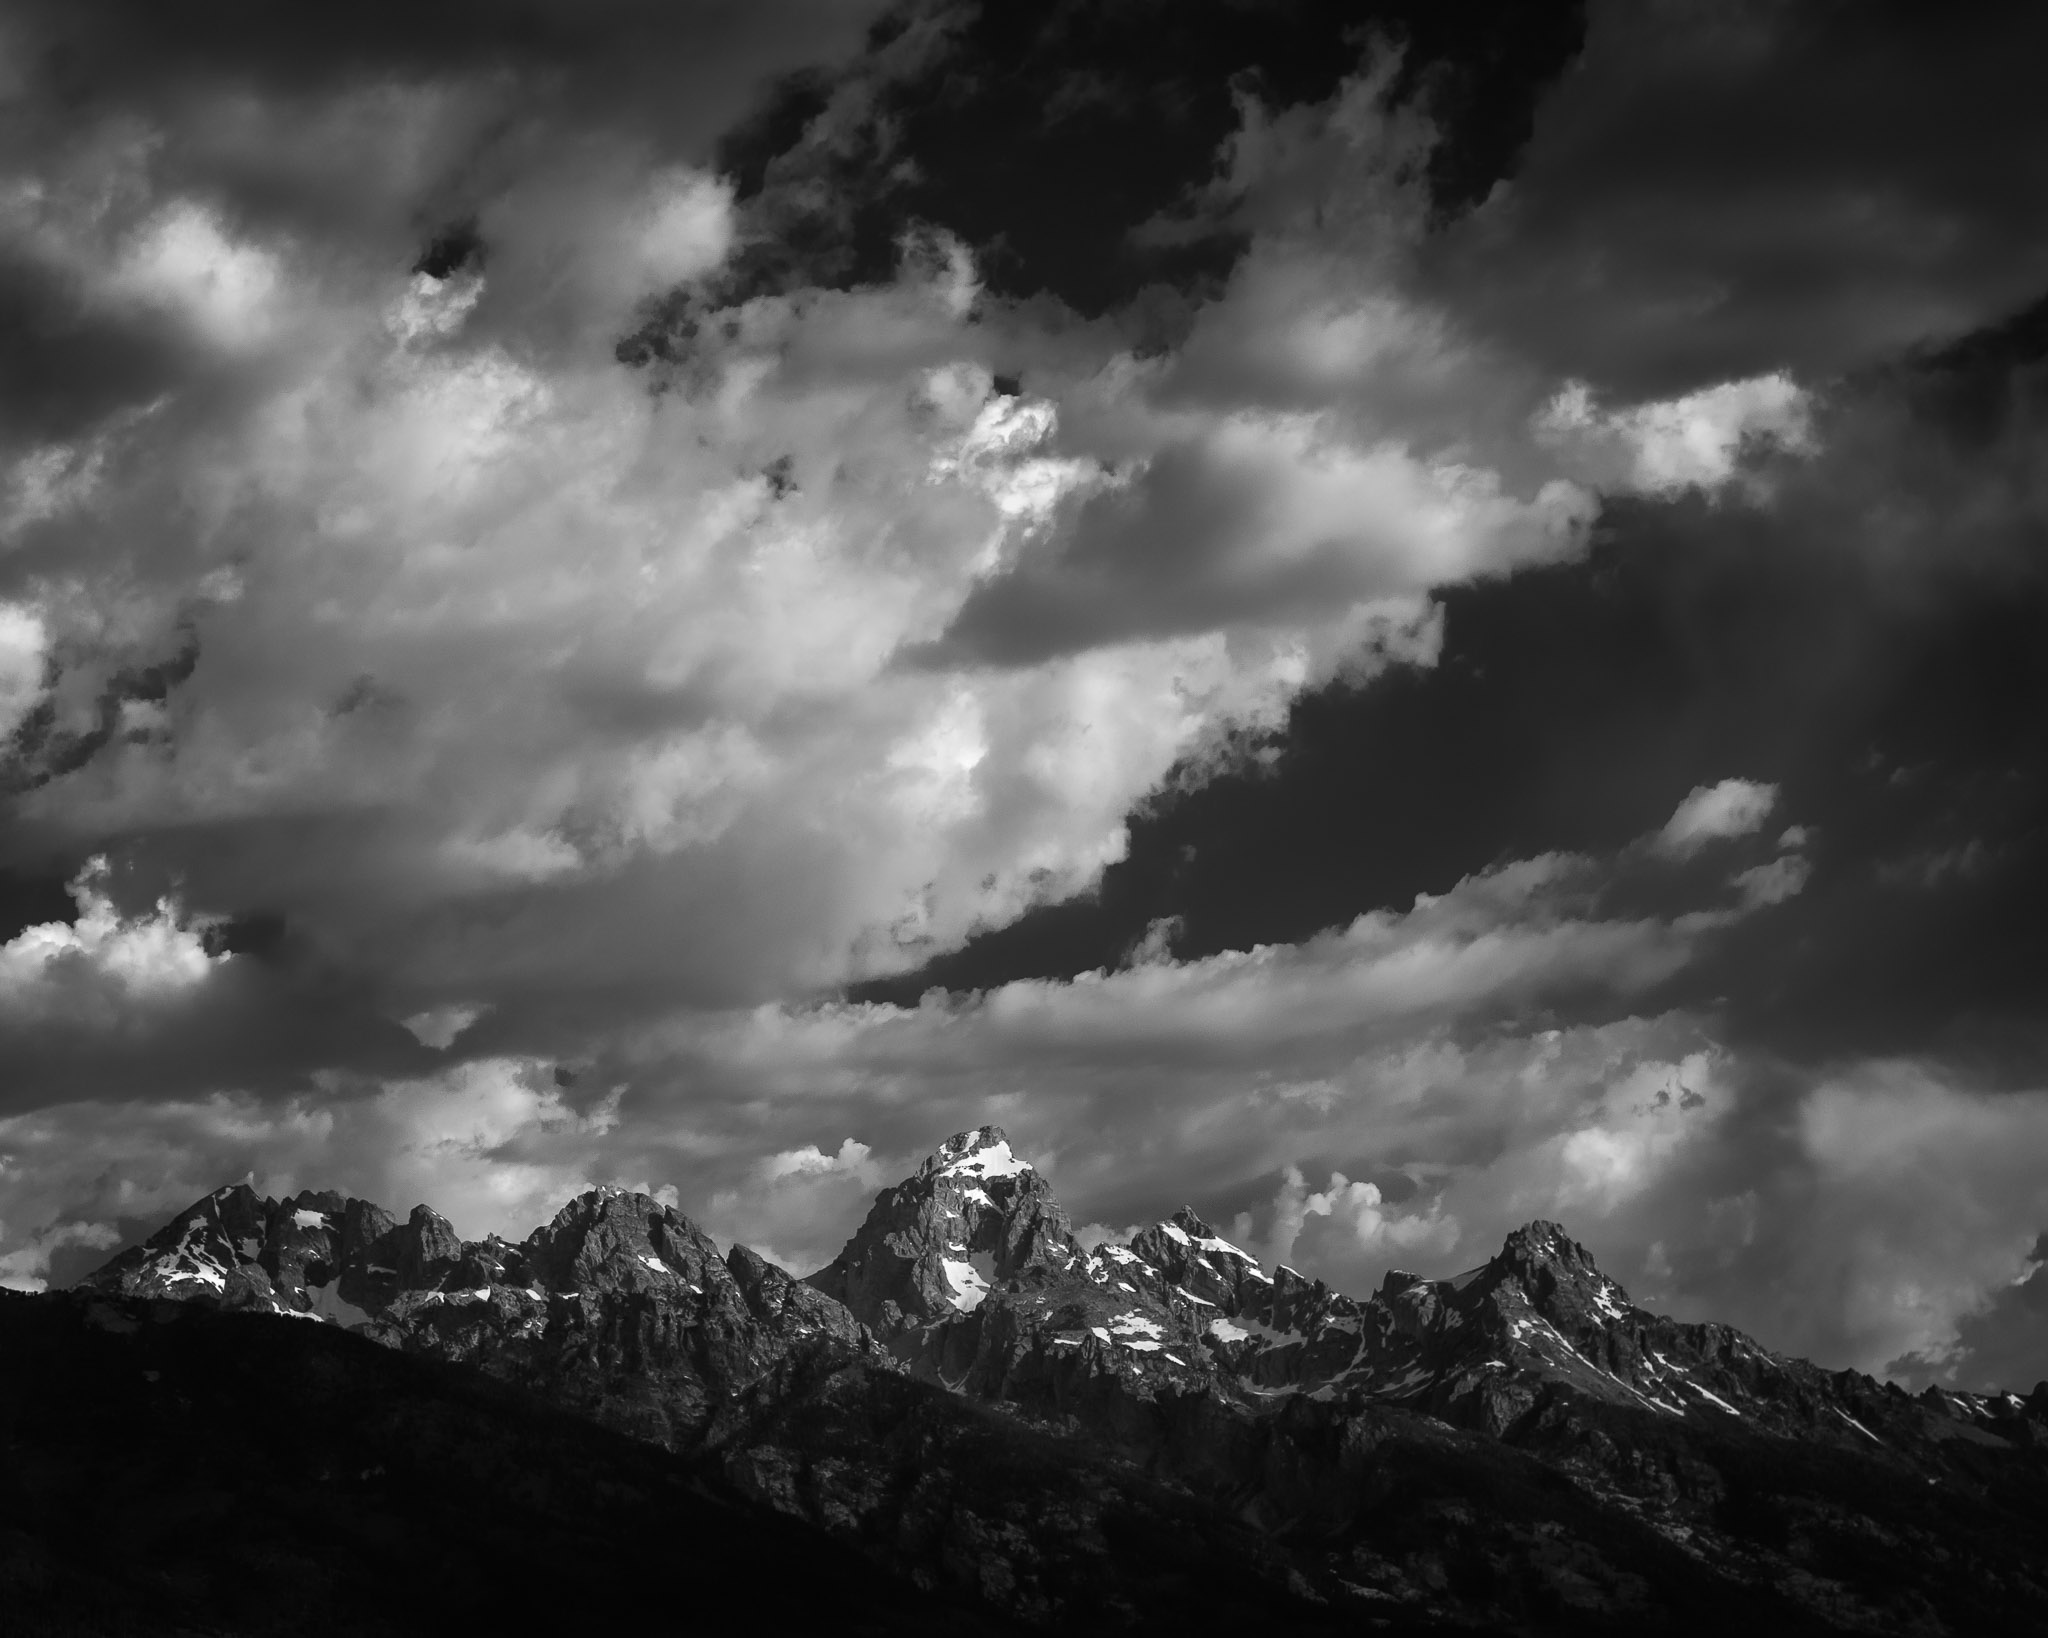 A look behind the scenes of my thought process when creating my image, 6000 Feet, of the Grand Teton Mountains in Wyoming, USA